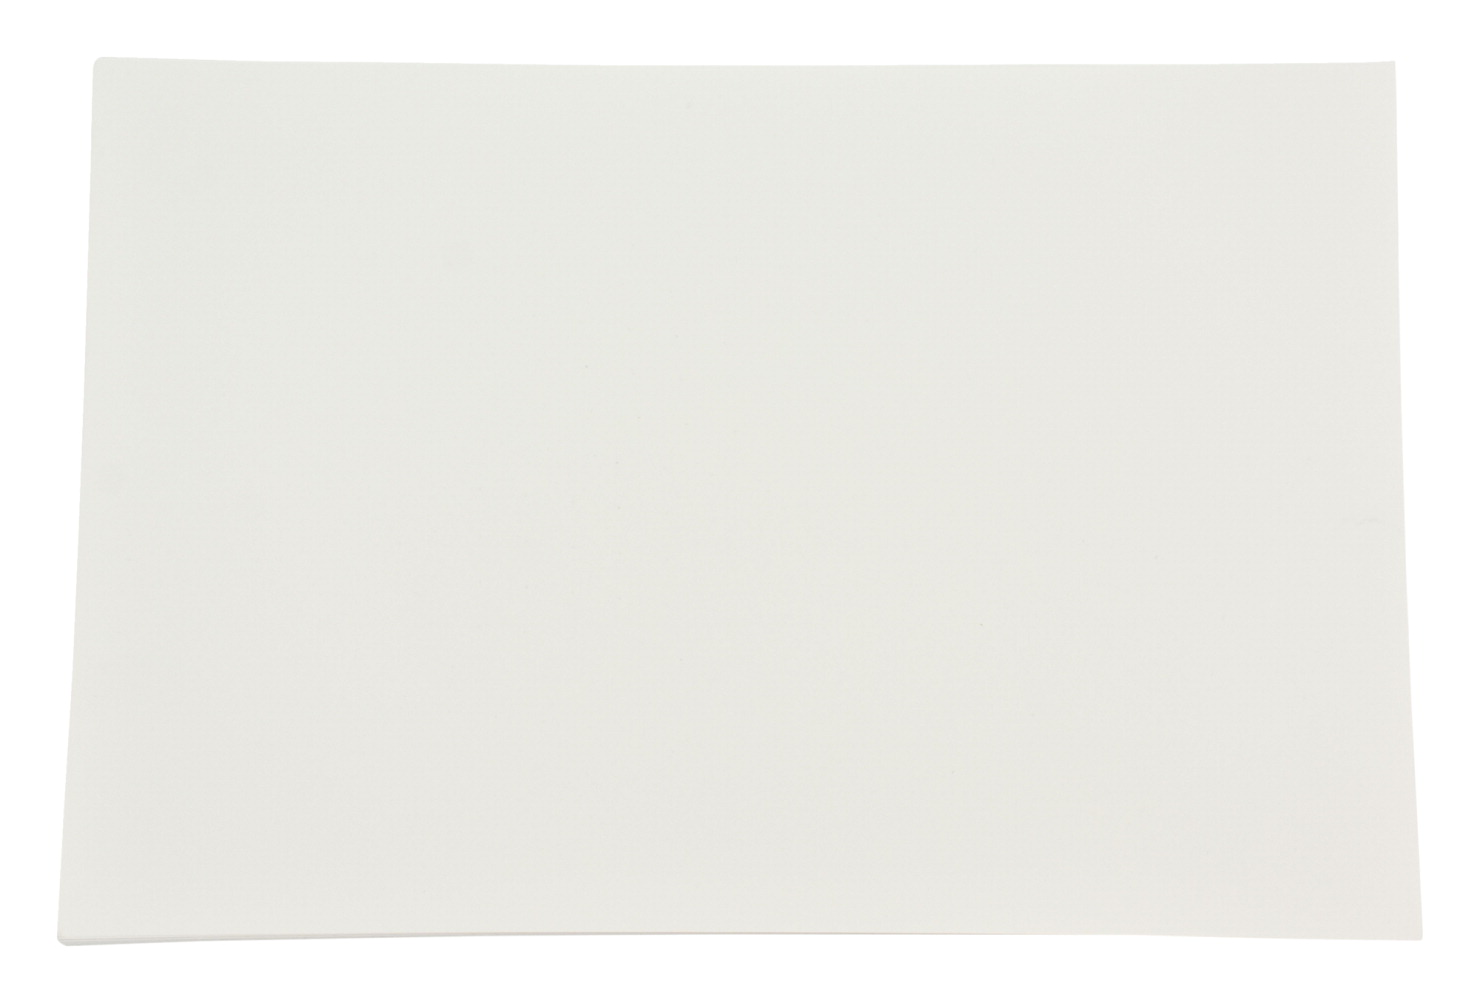 Sax Sulphite Drawing Paper, 80 lb, 12 x 18 Inches, Extra-White, Pack of 500